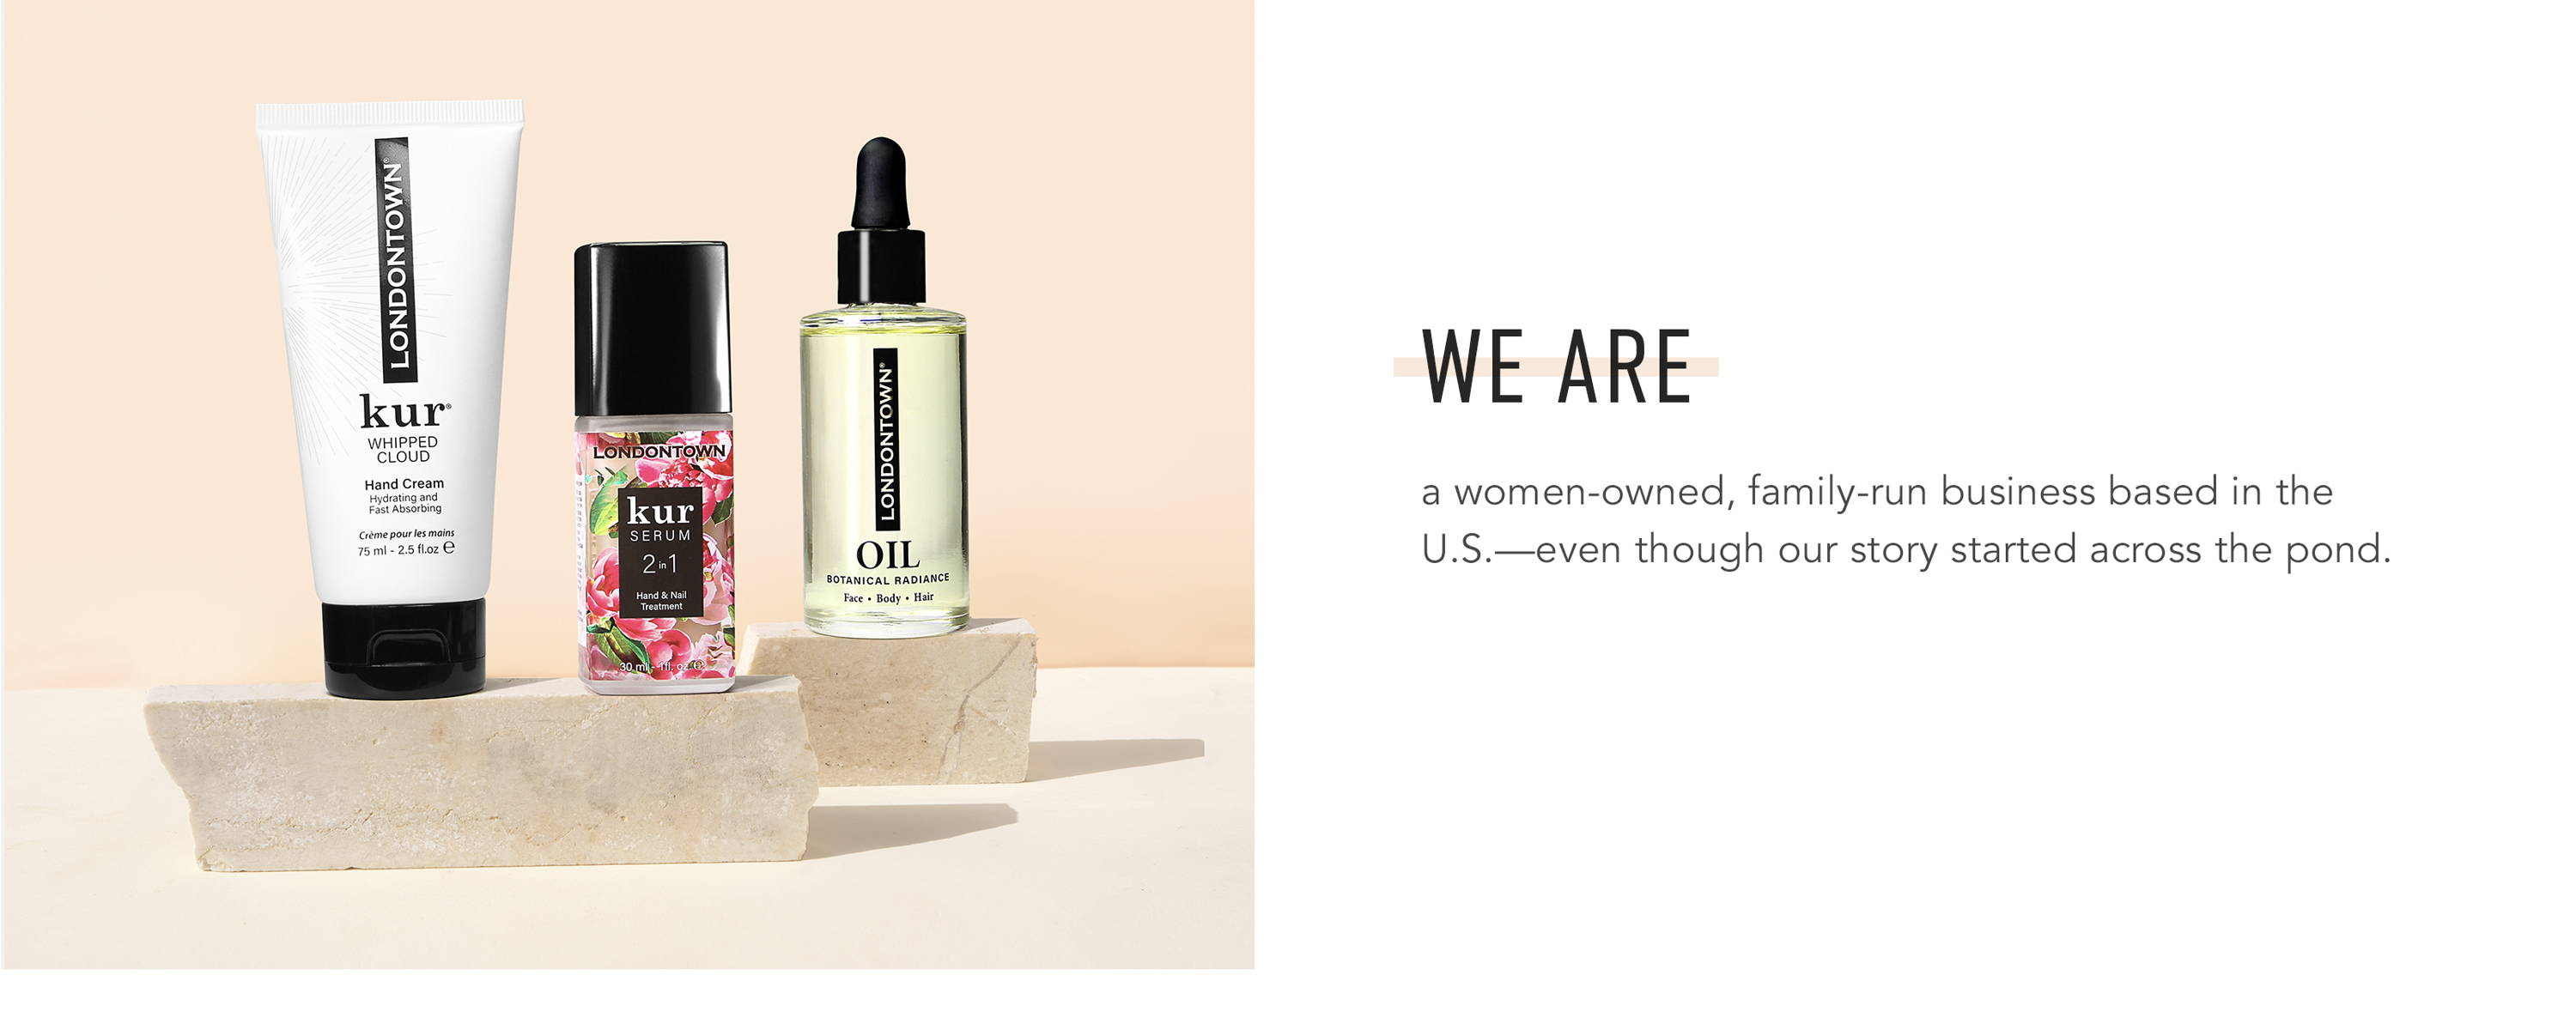 WE ARE a women-owned, family-run business based in the U.S.-even though our story started across the pond.